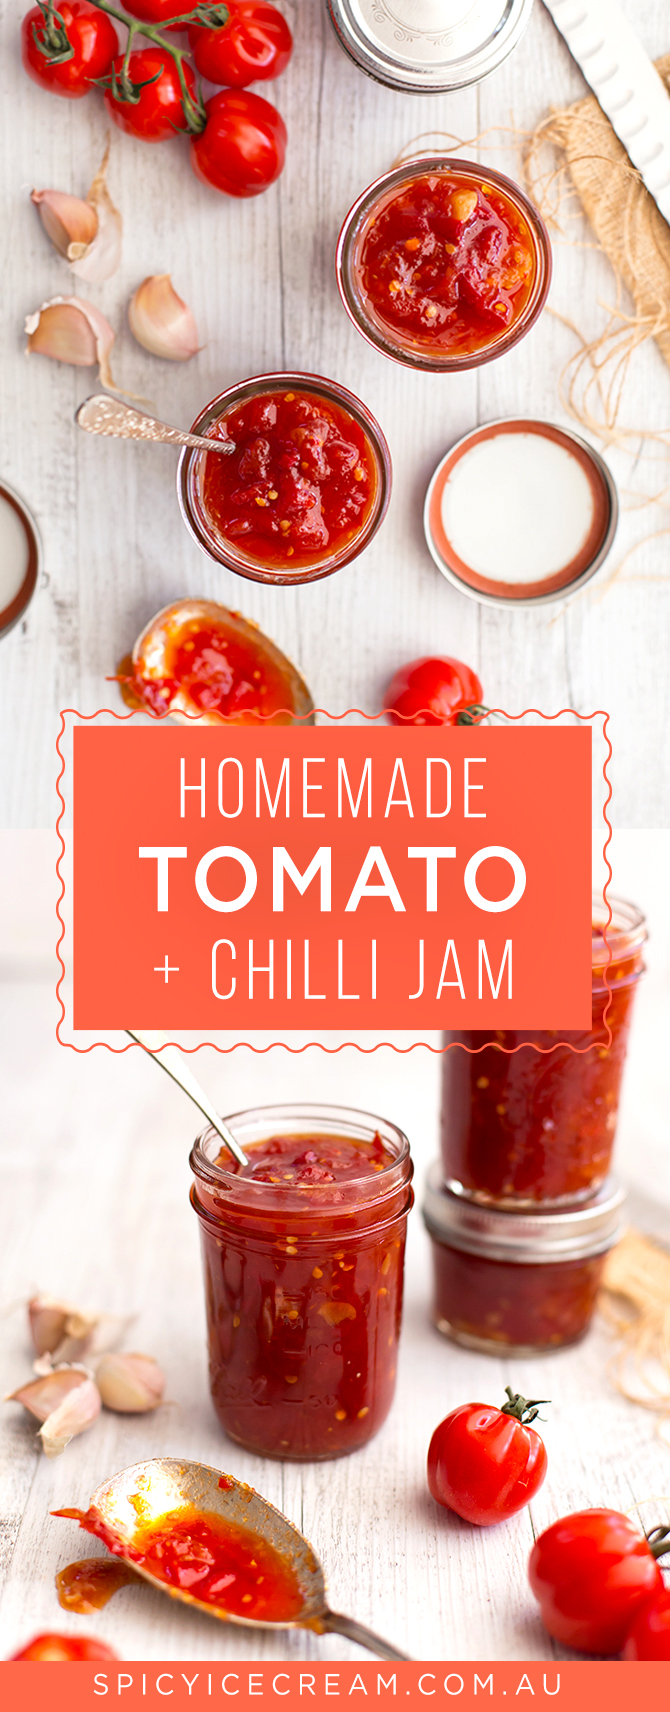 Homemade Tomato Chilli Jam